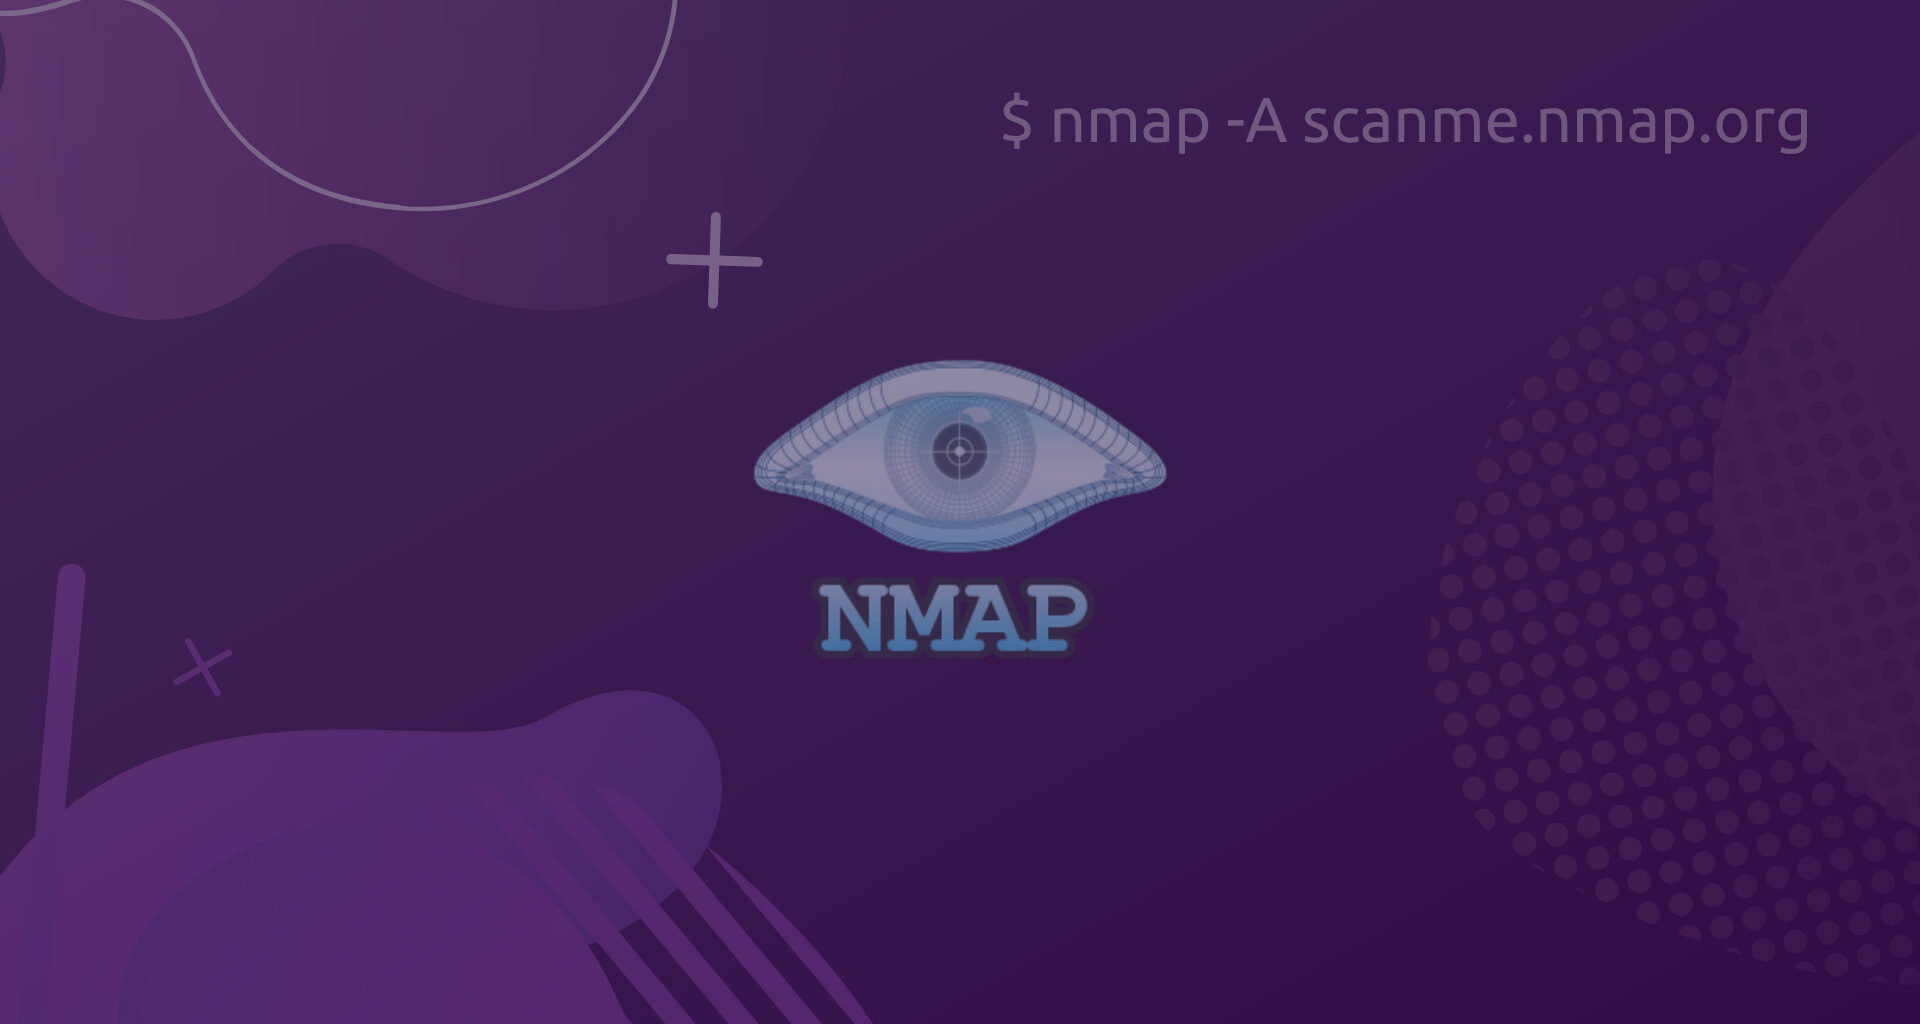 How To Use Nmap - A Comprehensive Guide Basics To Advanced